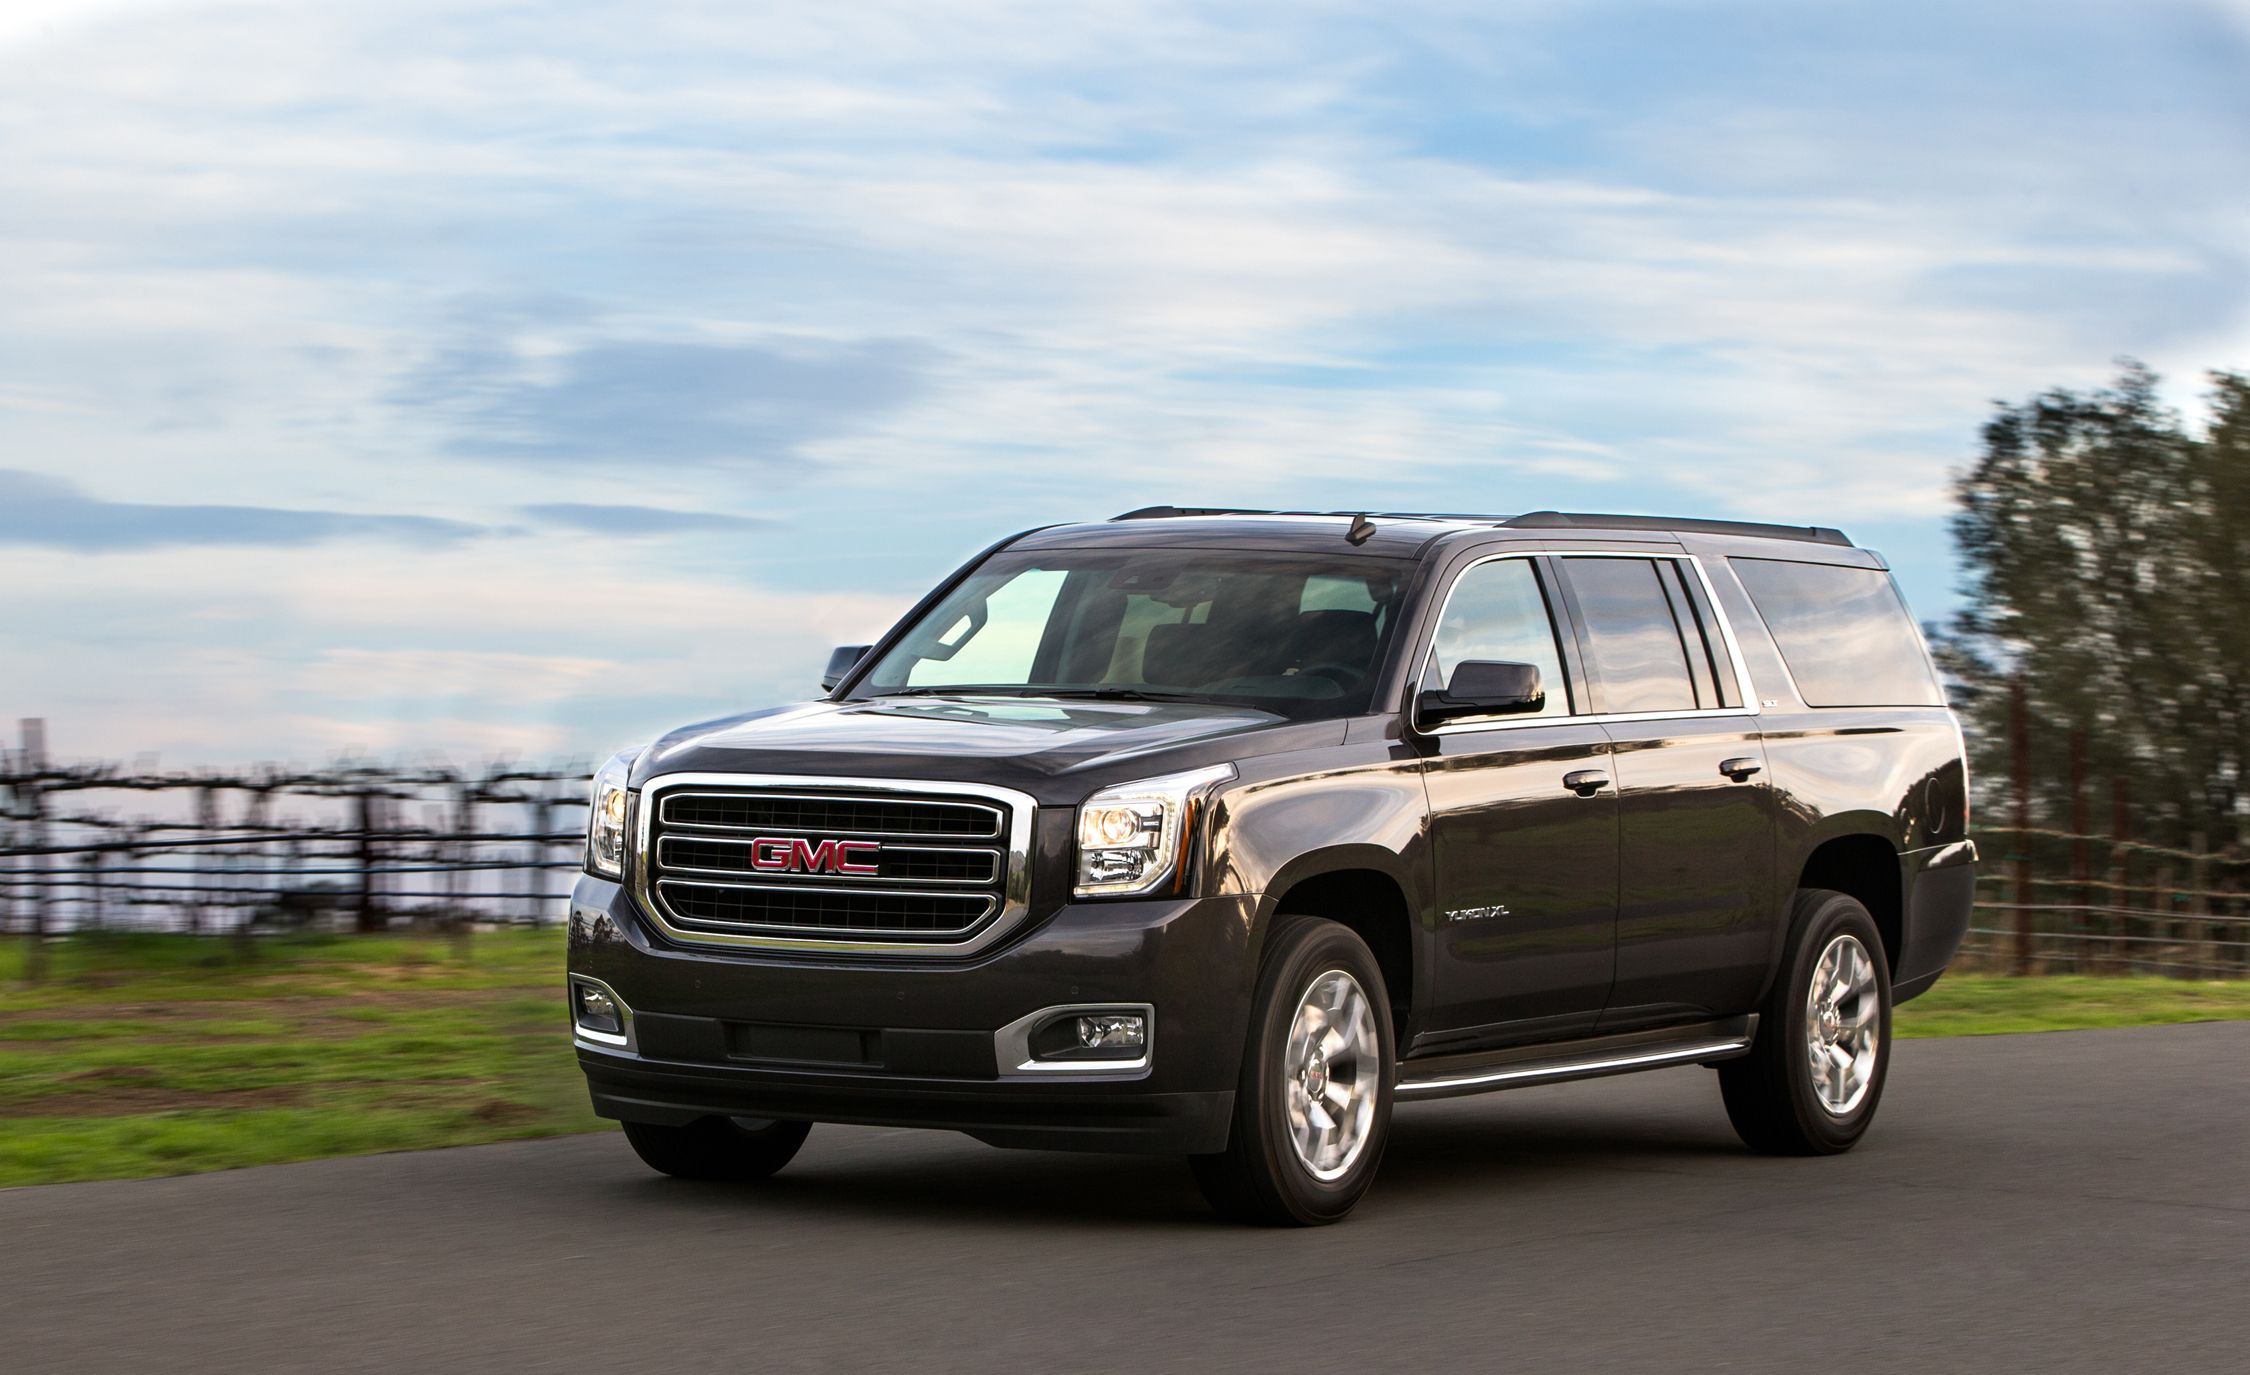 2018 gmc yukon xl. Delighful Yukon In 2018 Gmc Yukon Xl